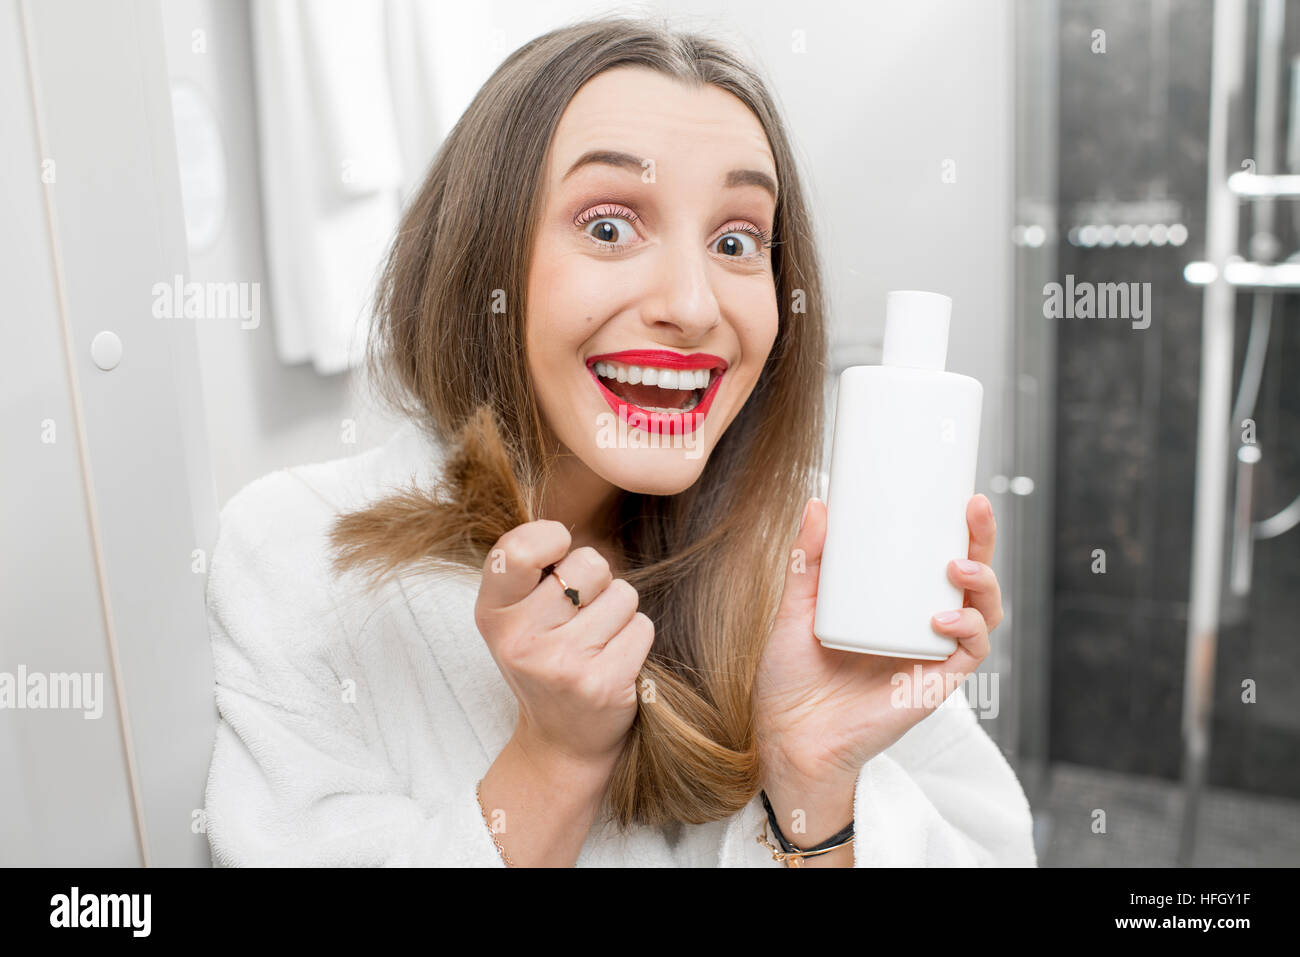 Hair care with shampoo or conditioner - Stock Image